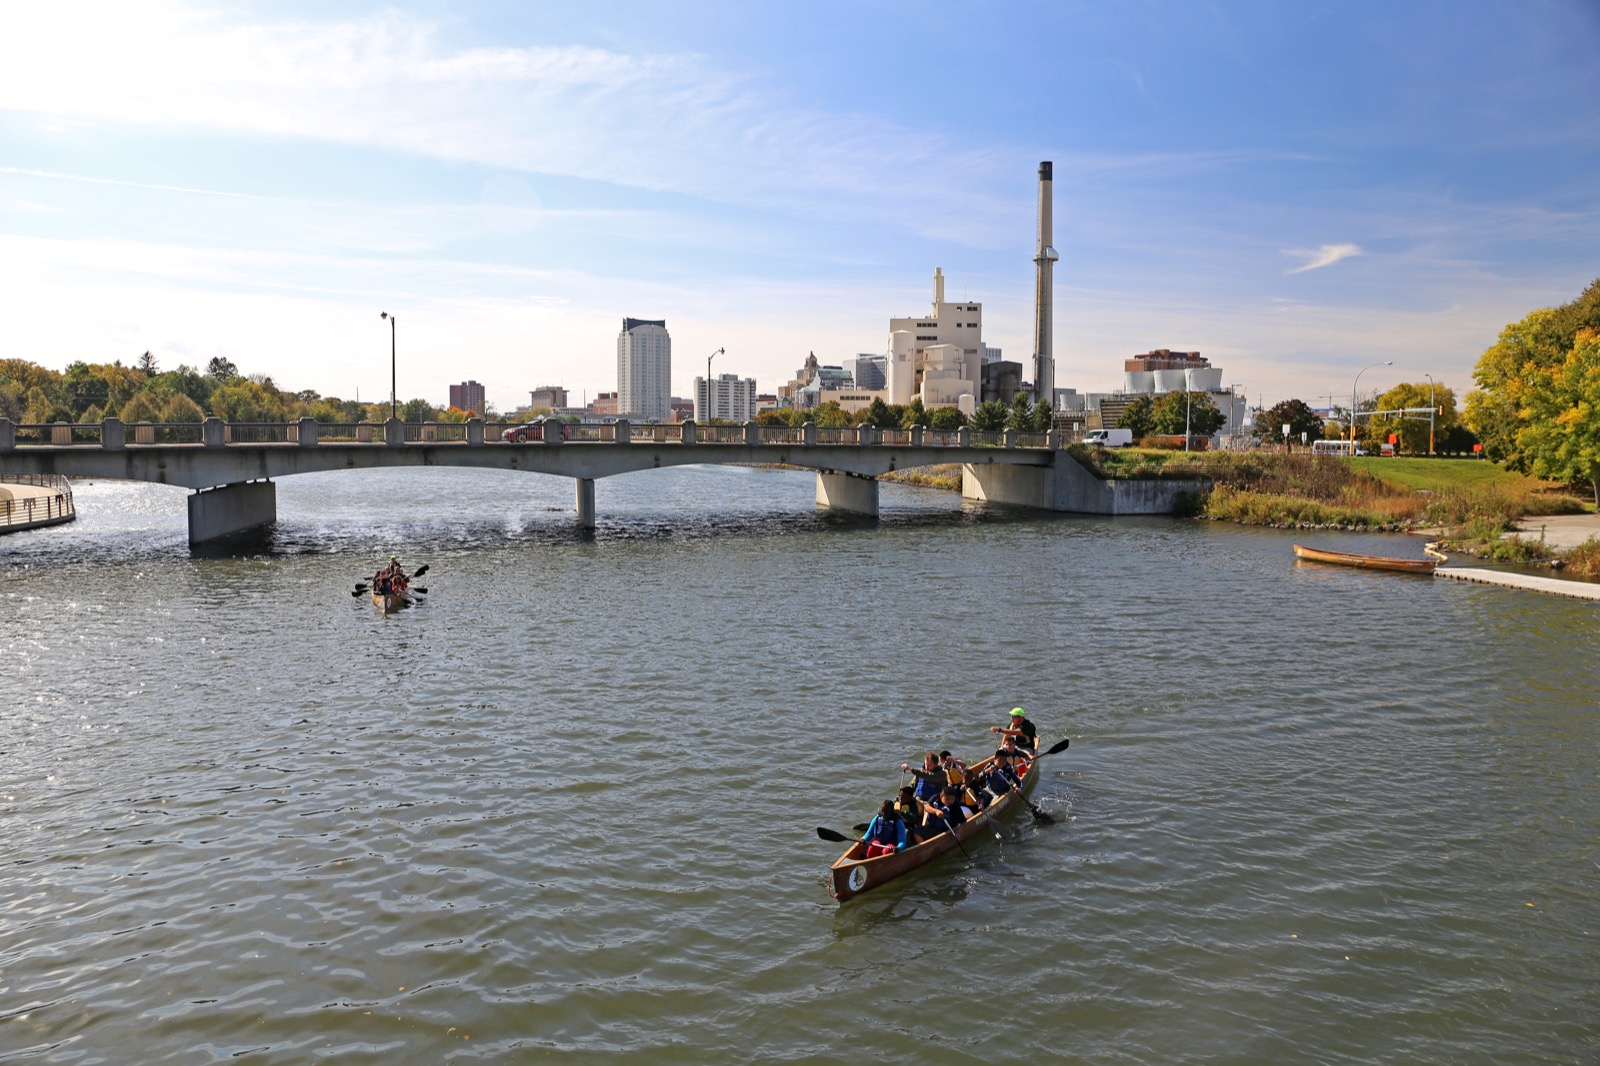 Canoeing in the shadow of Rochester